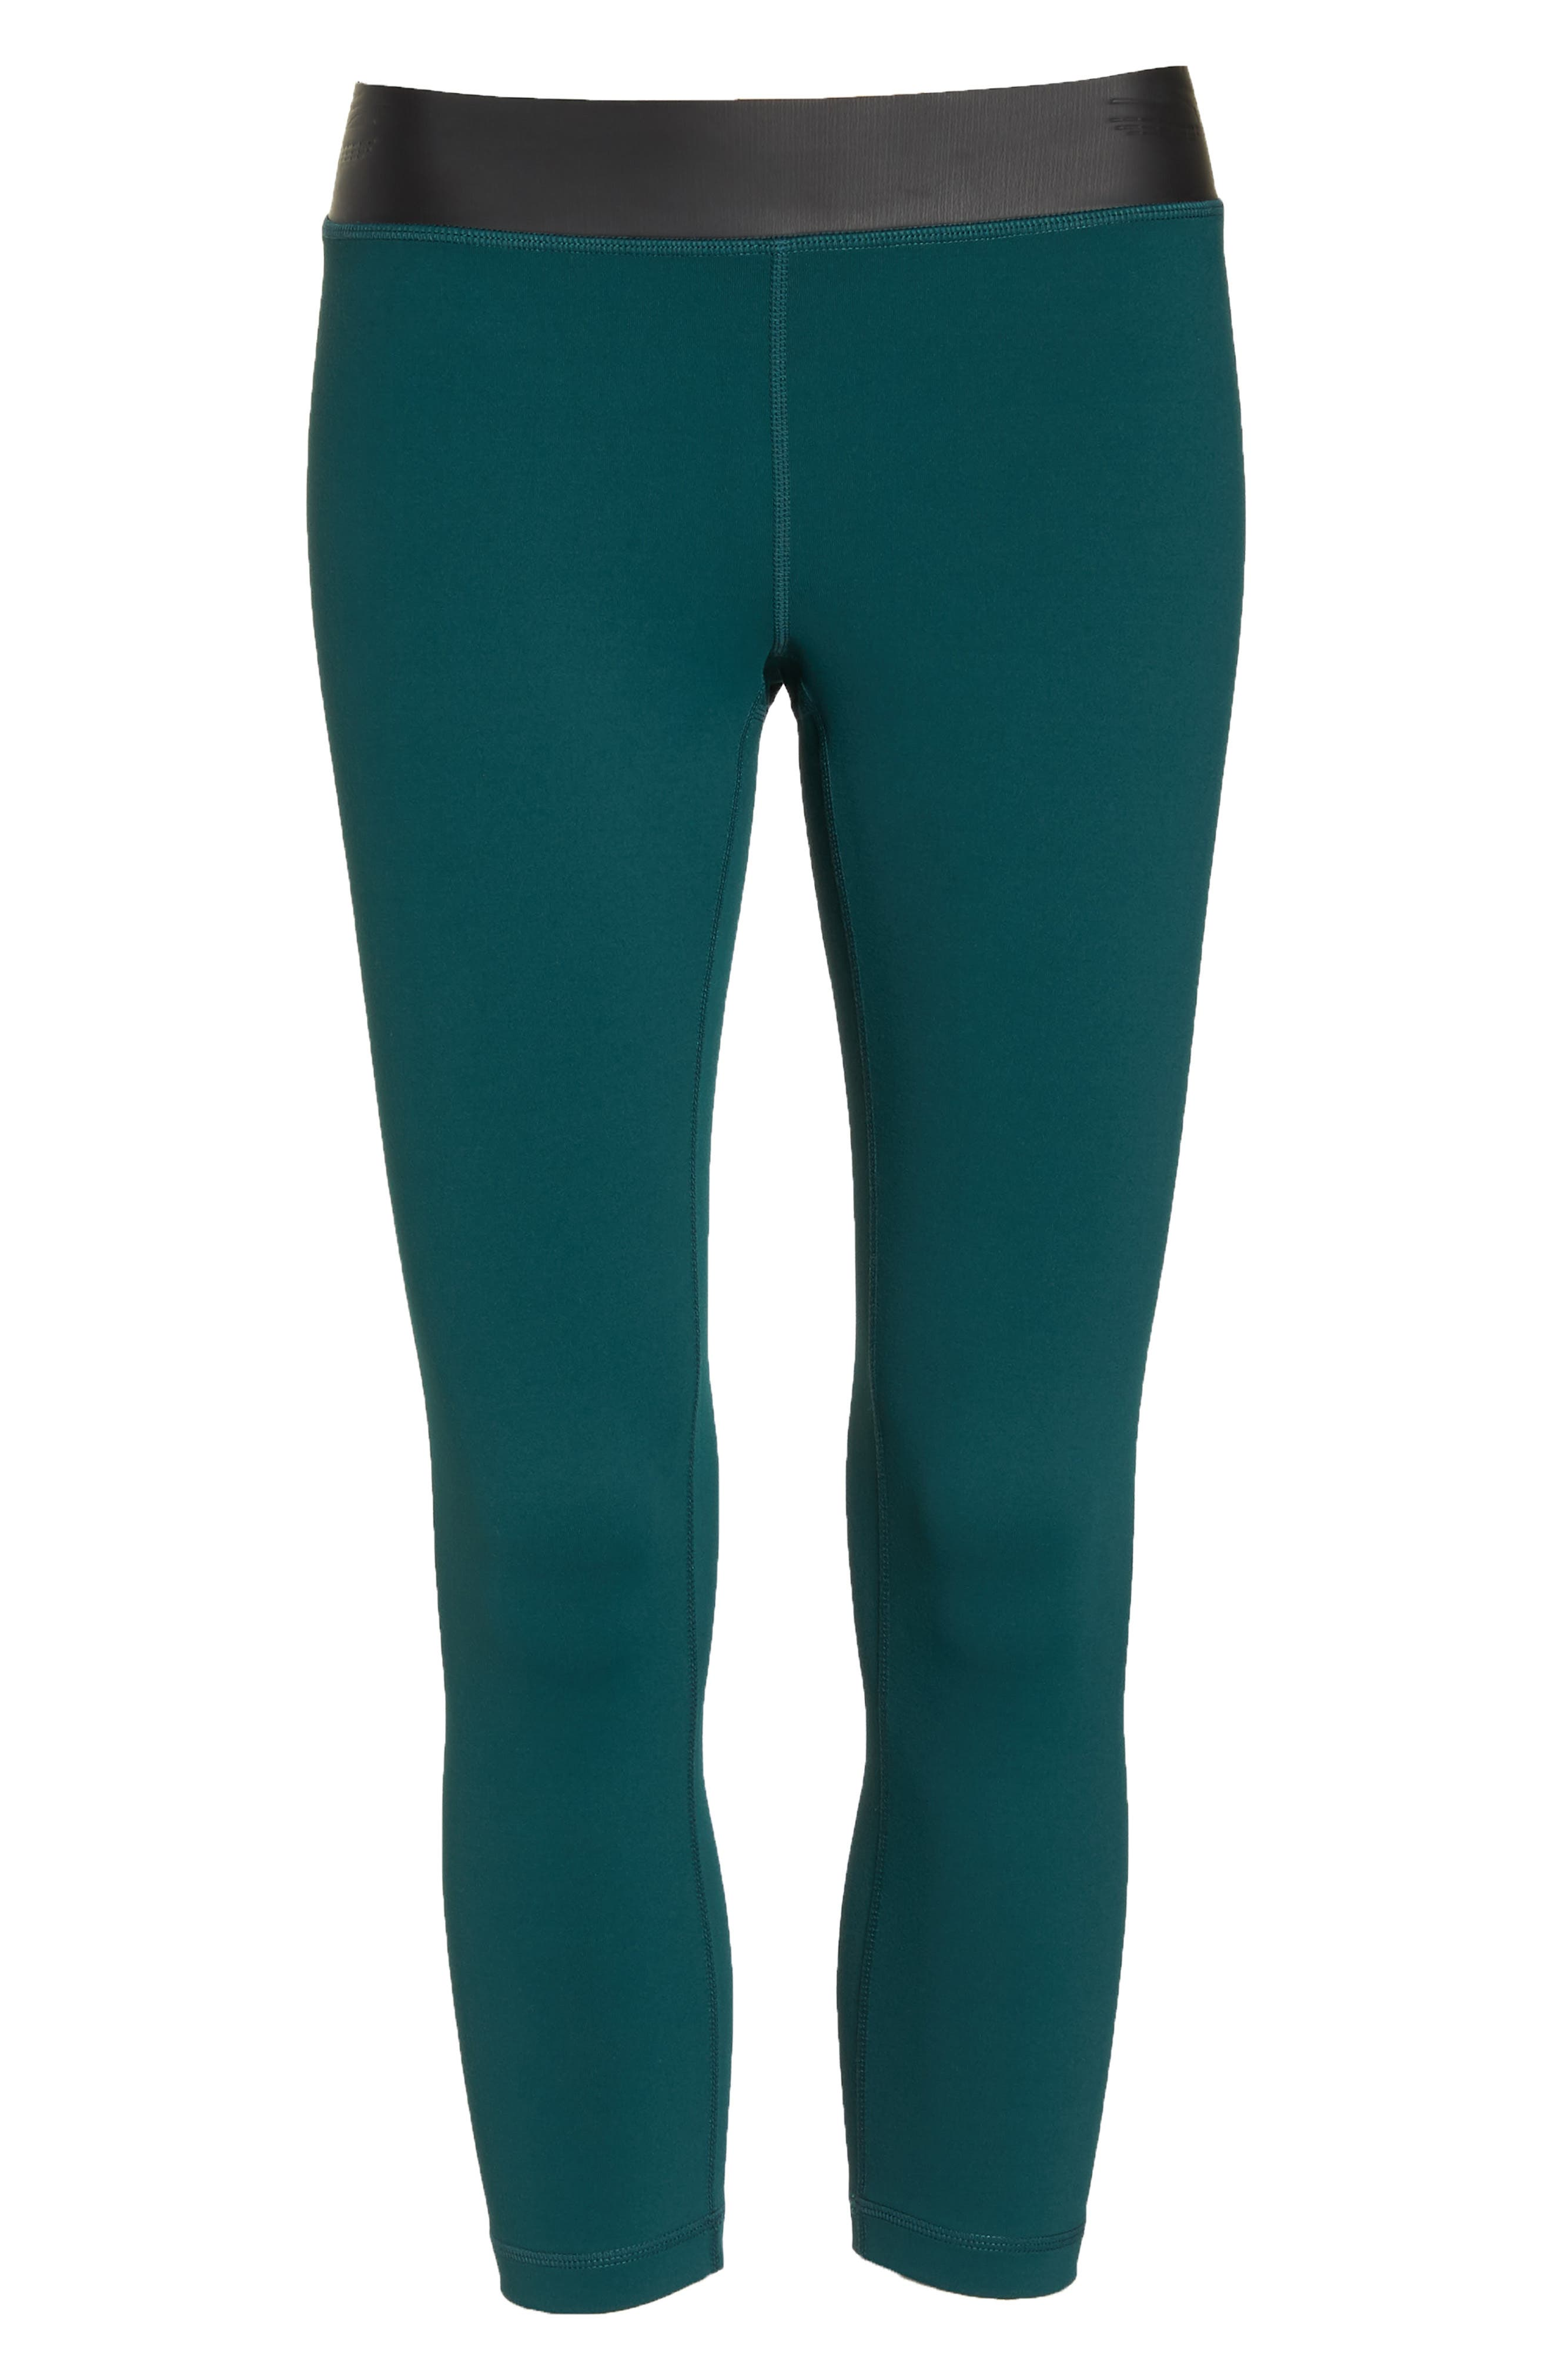 Neo Banded Crop Leggings,                             Alternate thumbnail 7, color,                             Green Bug